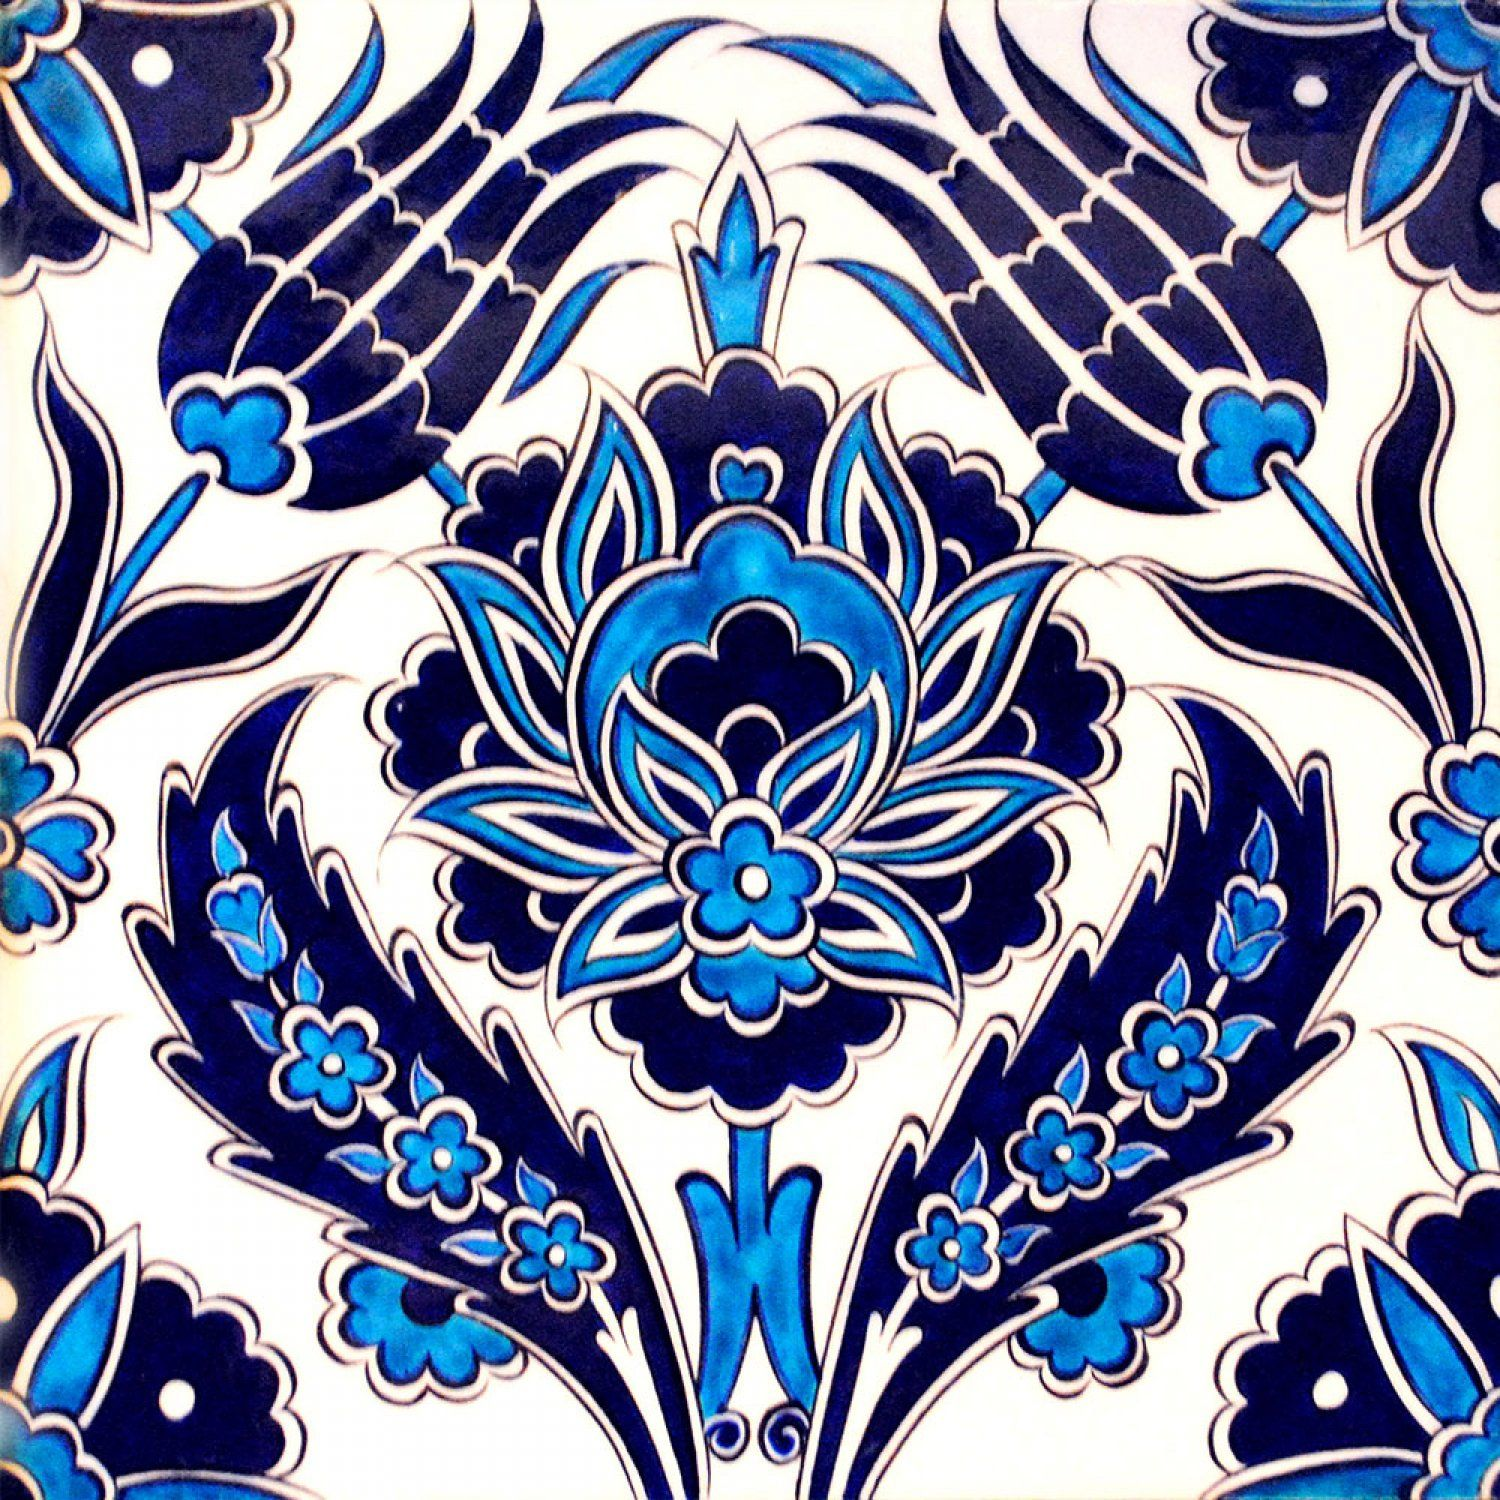 Iznik Ceramic Tile Floral Design - Buy Iznik Tile Product on Alibaba ...